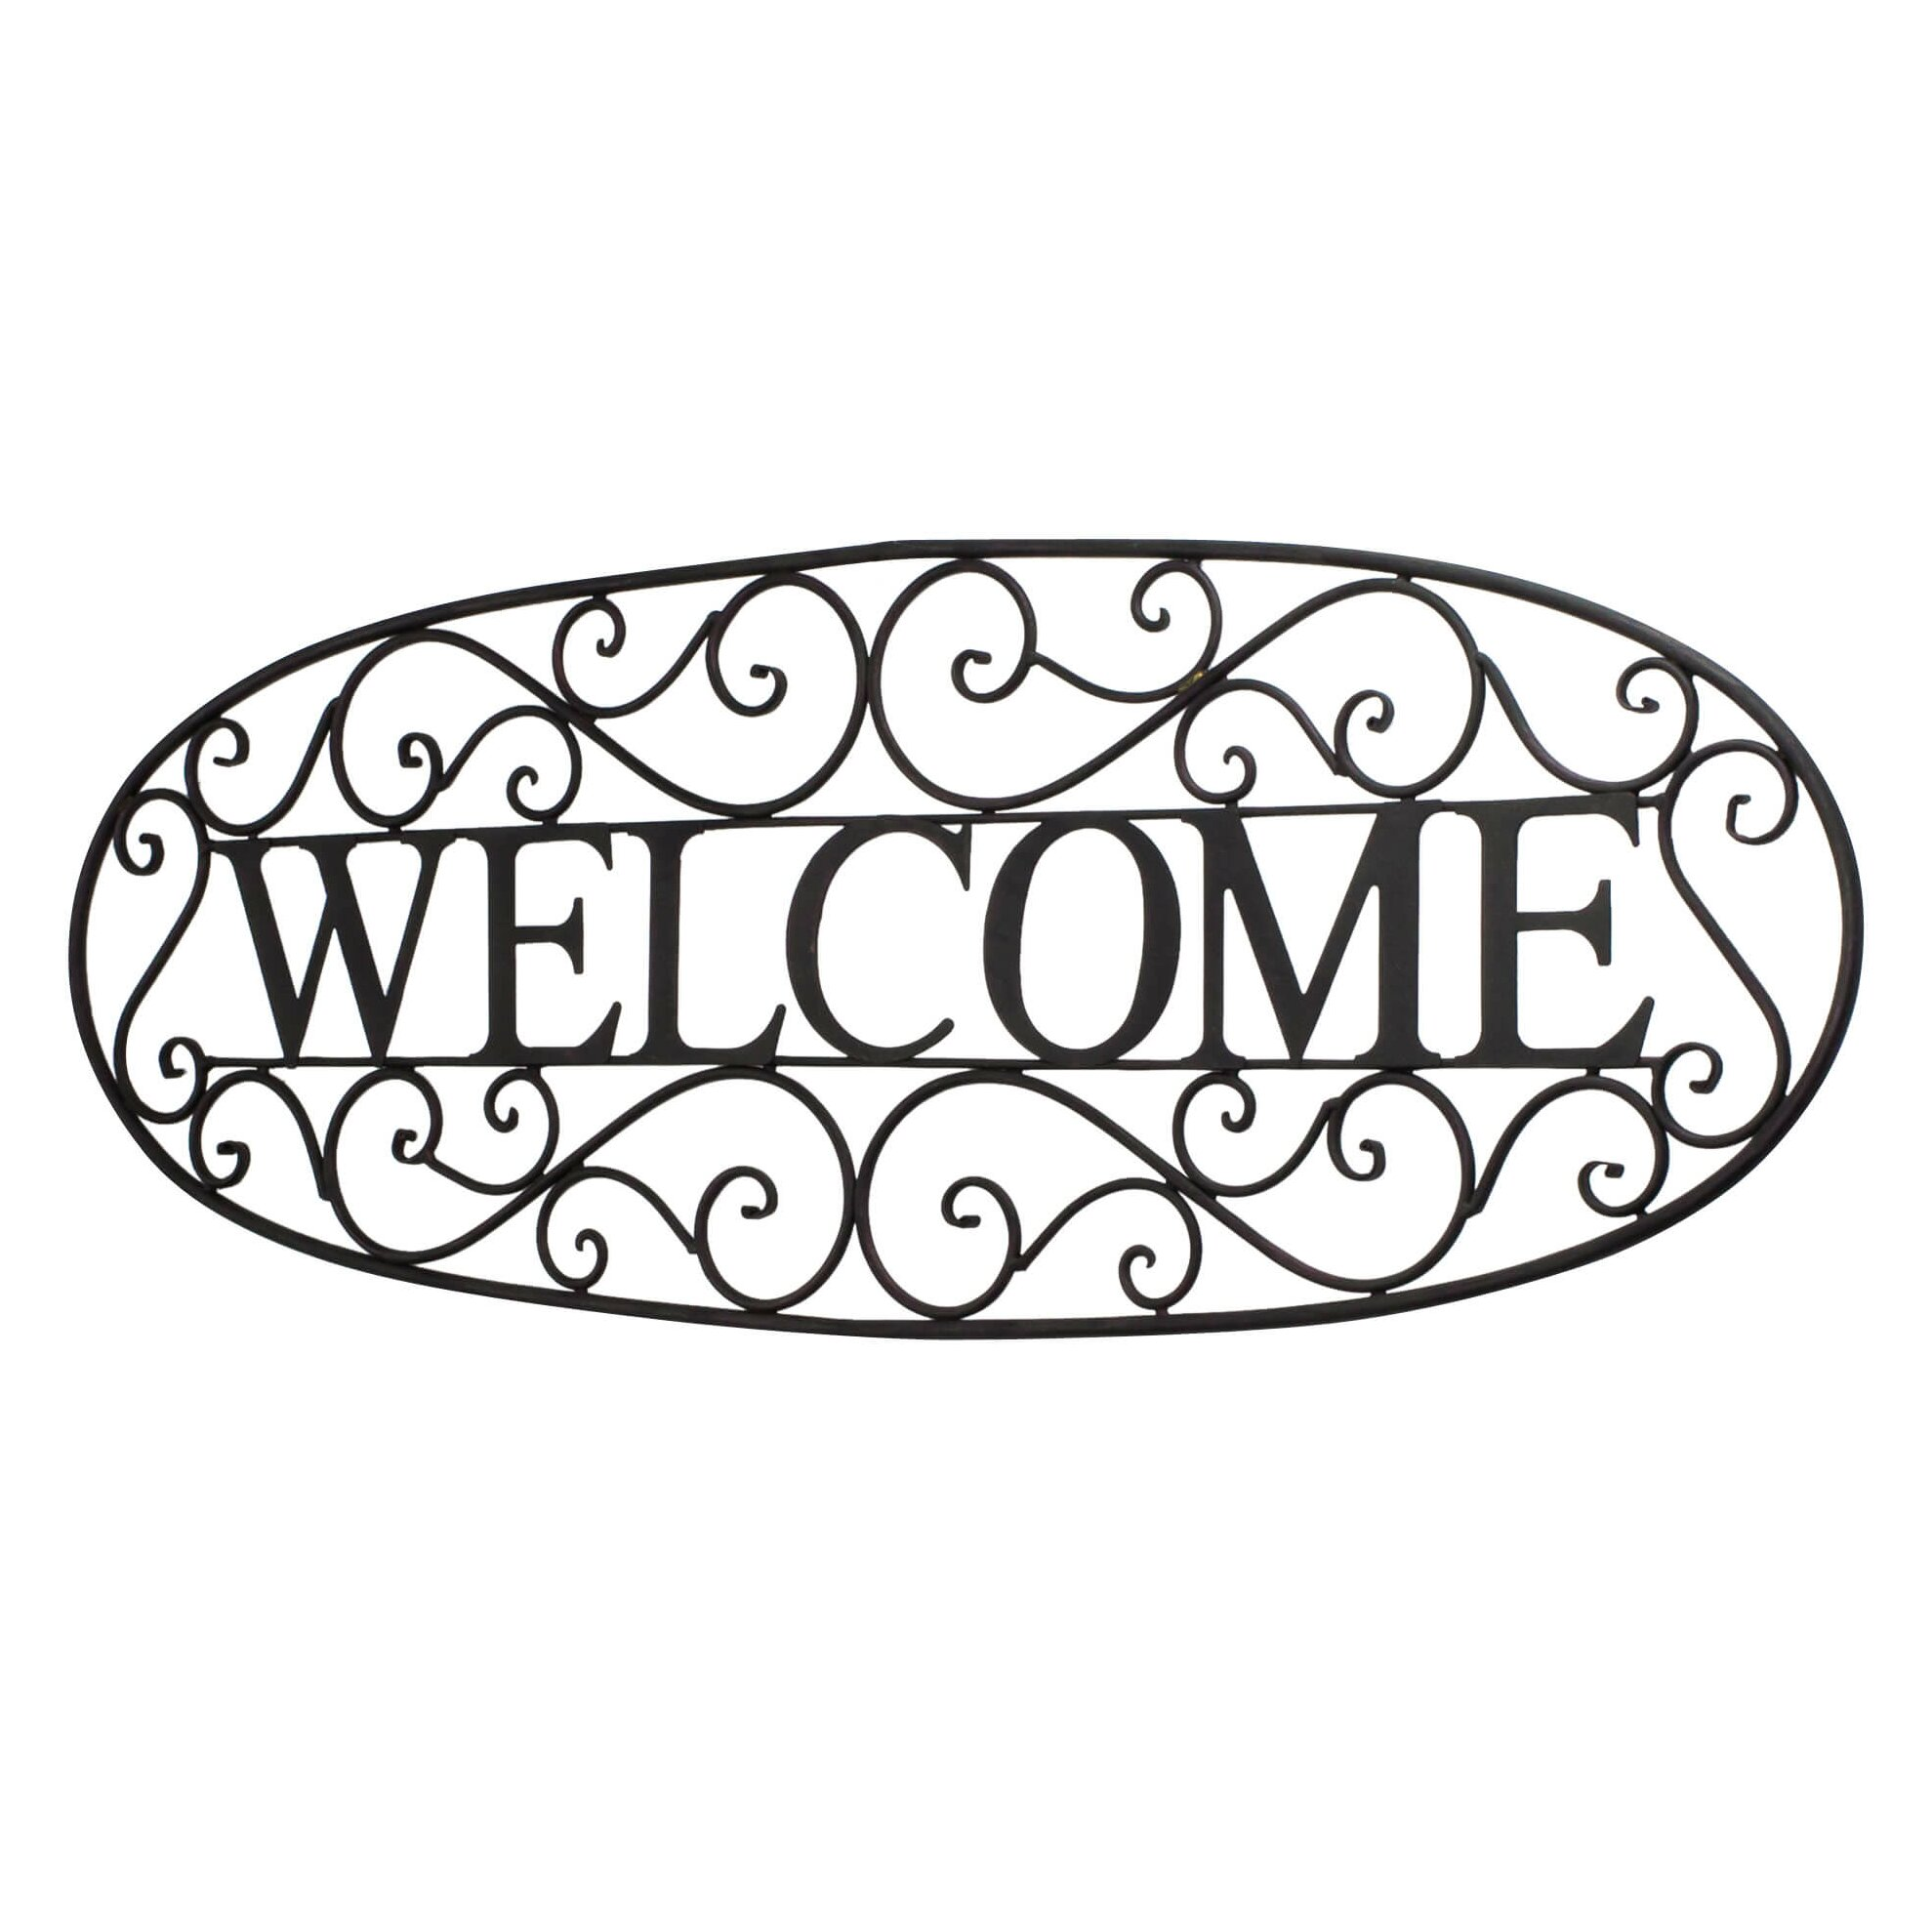 Black Iron Wall Decor Bayaccents Welcome Sign Wrought Iron Wall Dccor Reviews Wayfair